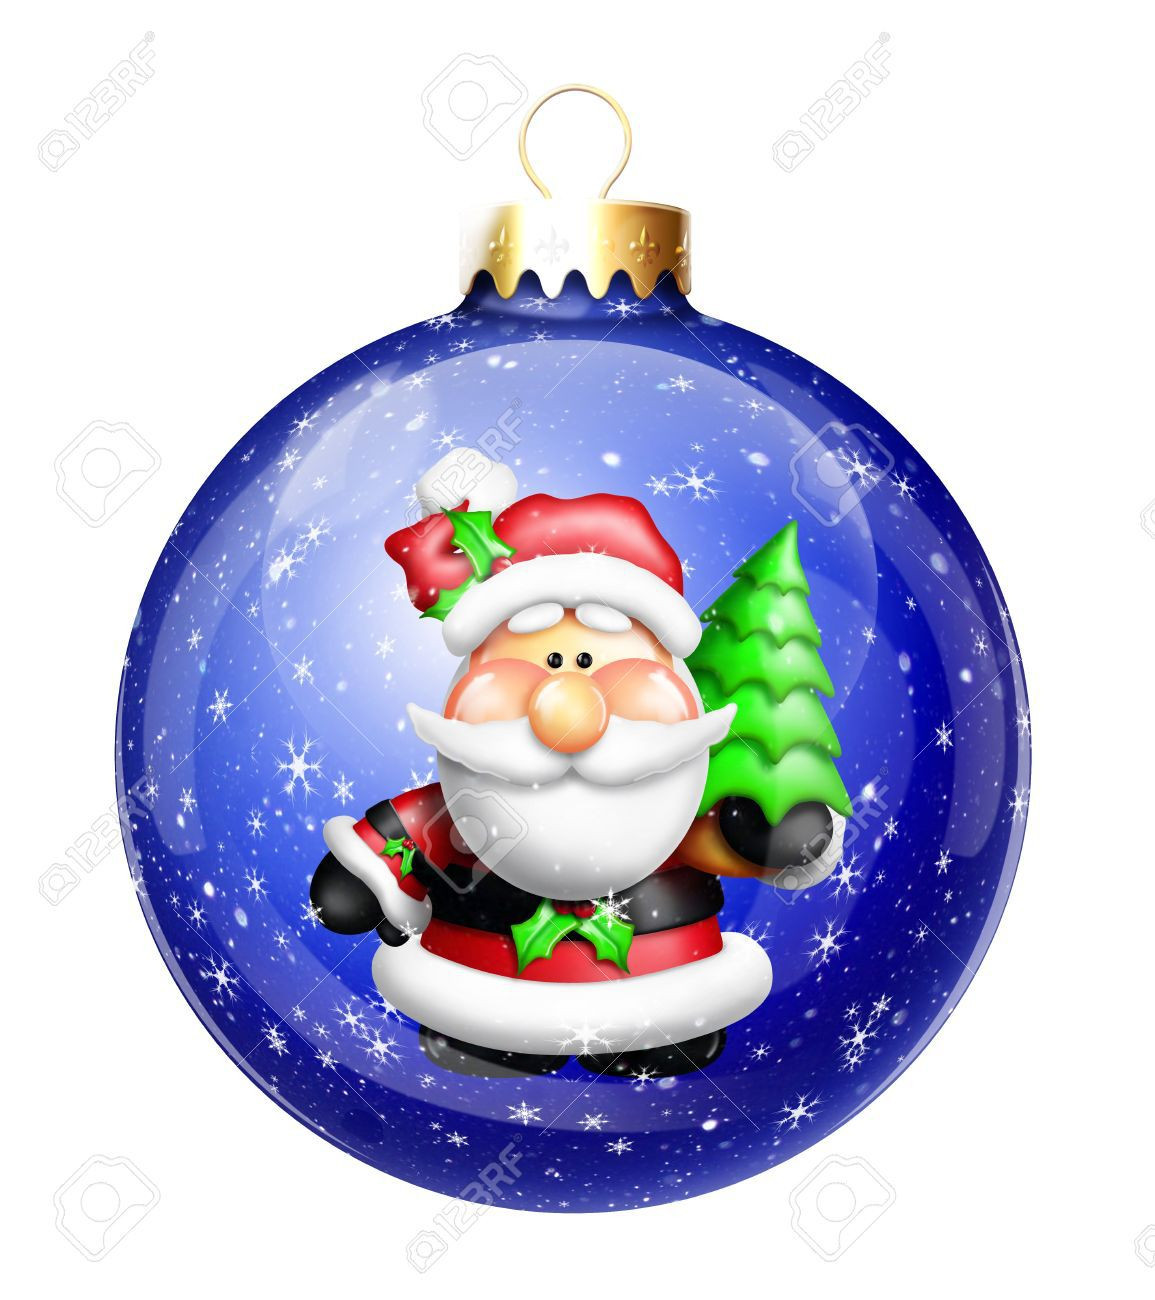 Christmas decorations clipart cartoon collection